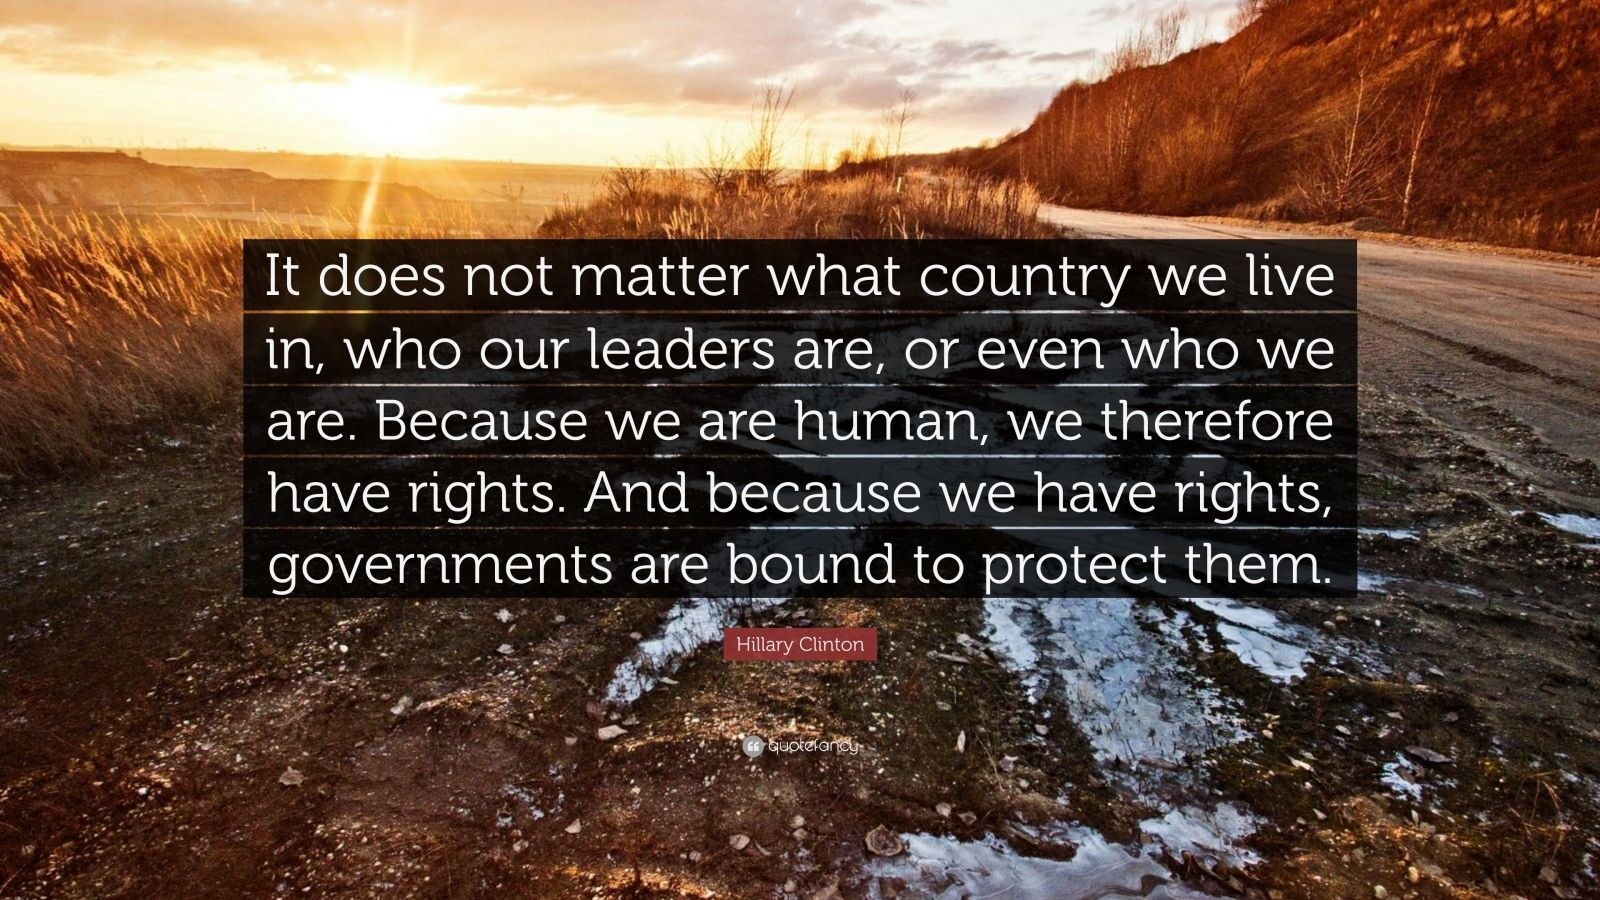 "Hillary Clinton Quote: ""It does not matter what country we live in, who our leaders are, or even who we are. Because we are human, we therefore have rights. And because we have rights, governments are bound to protect them."""